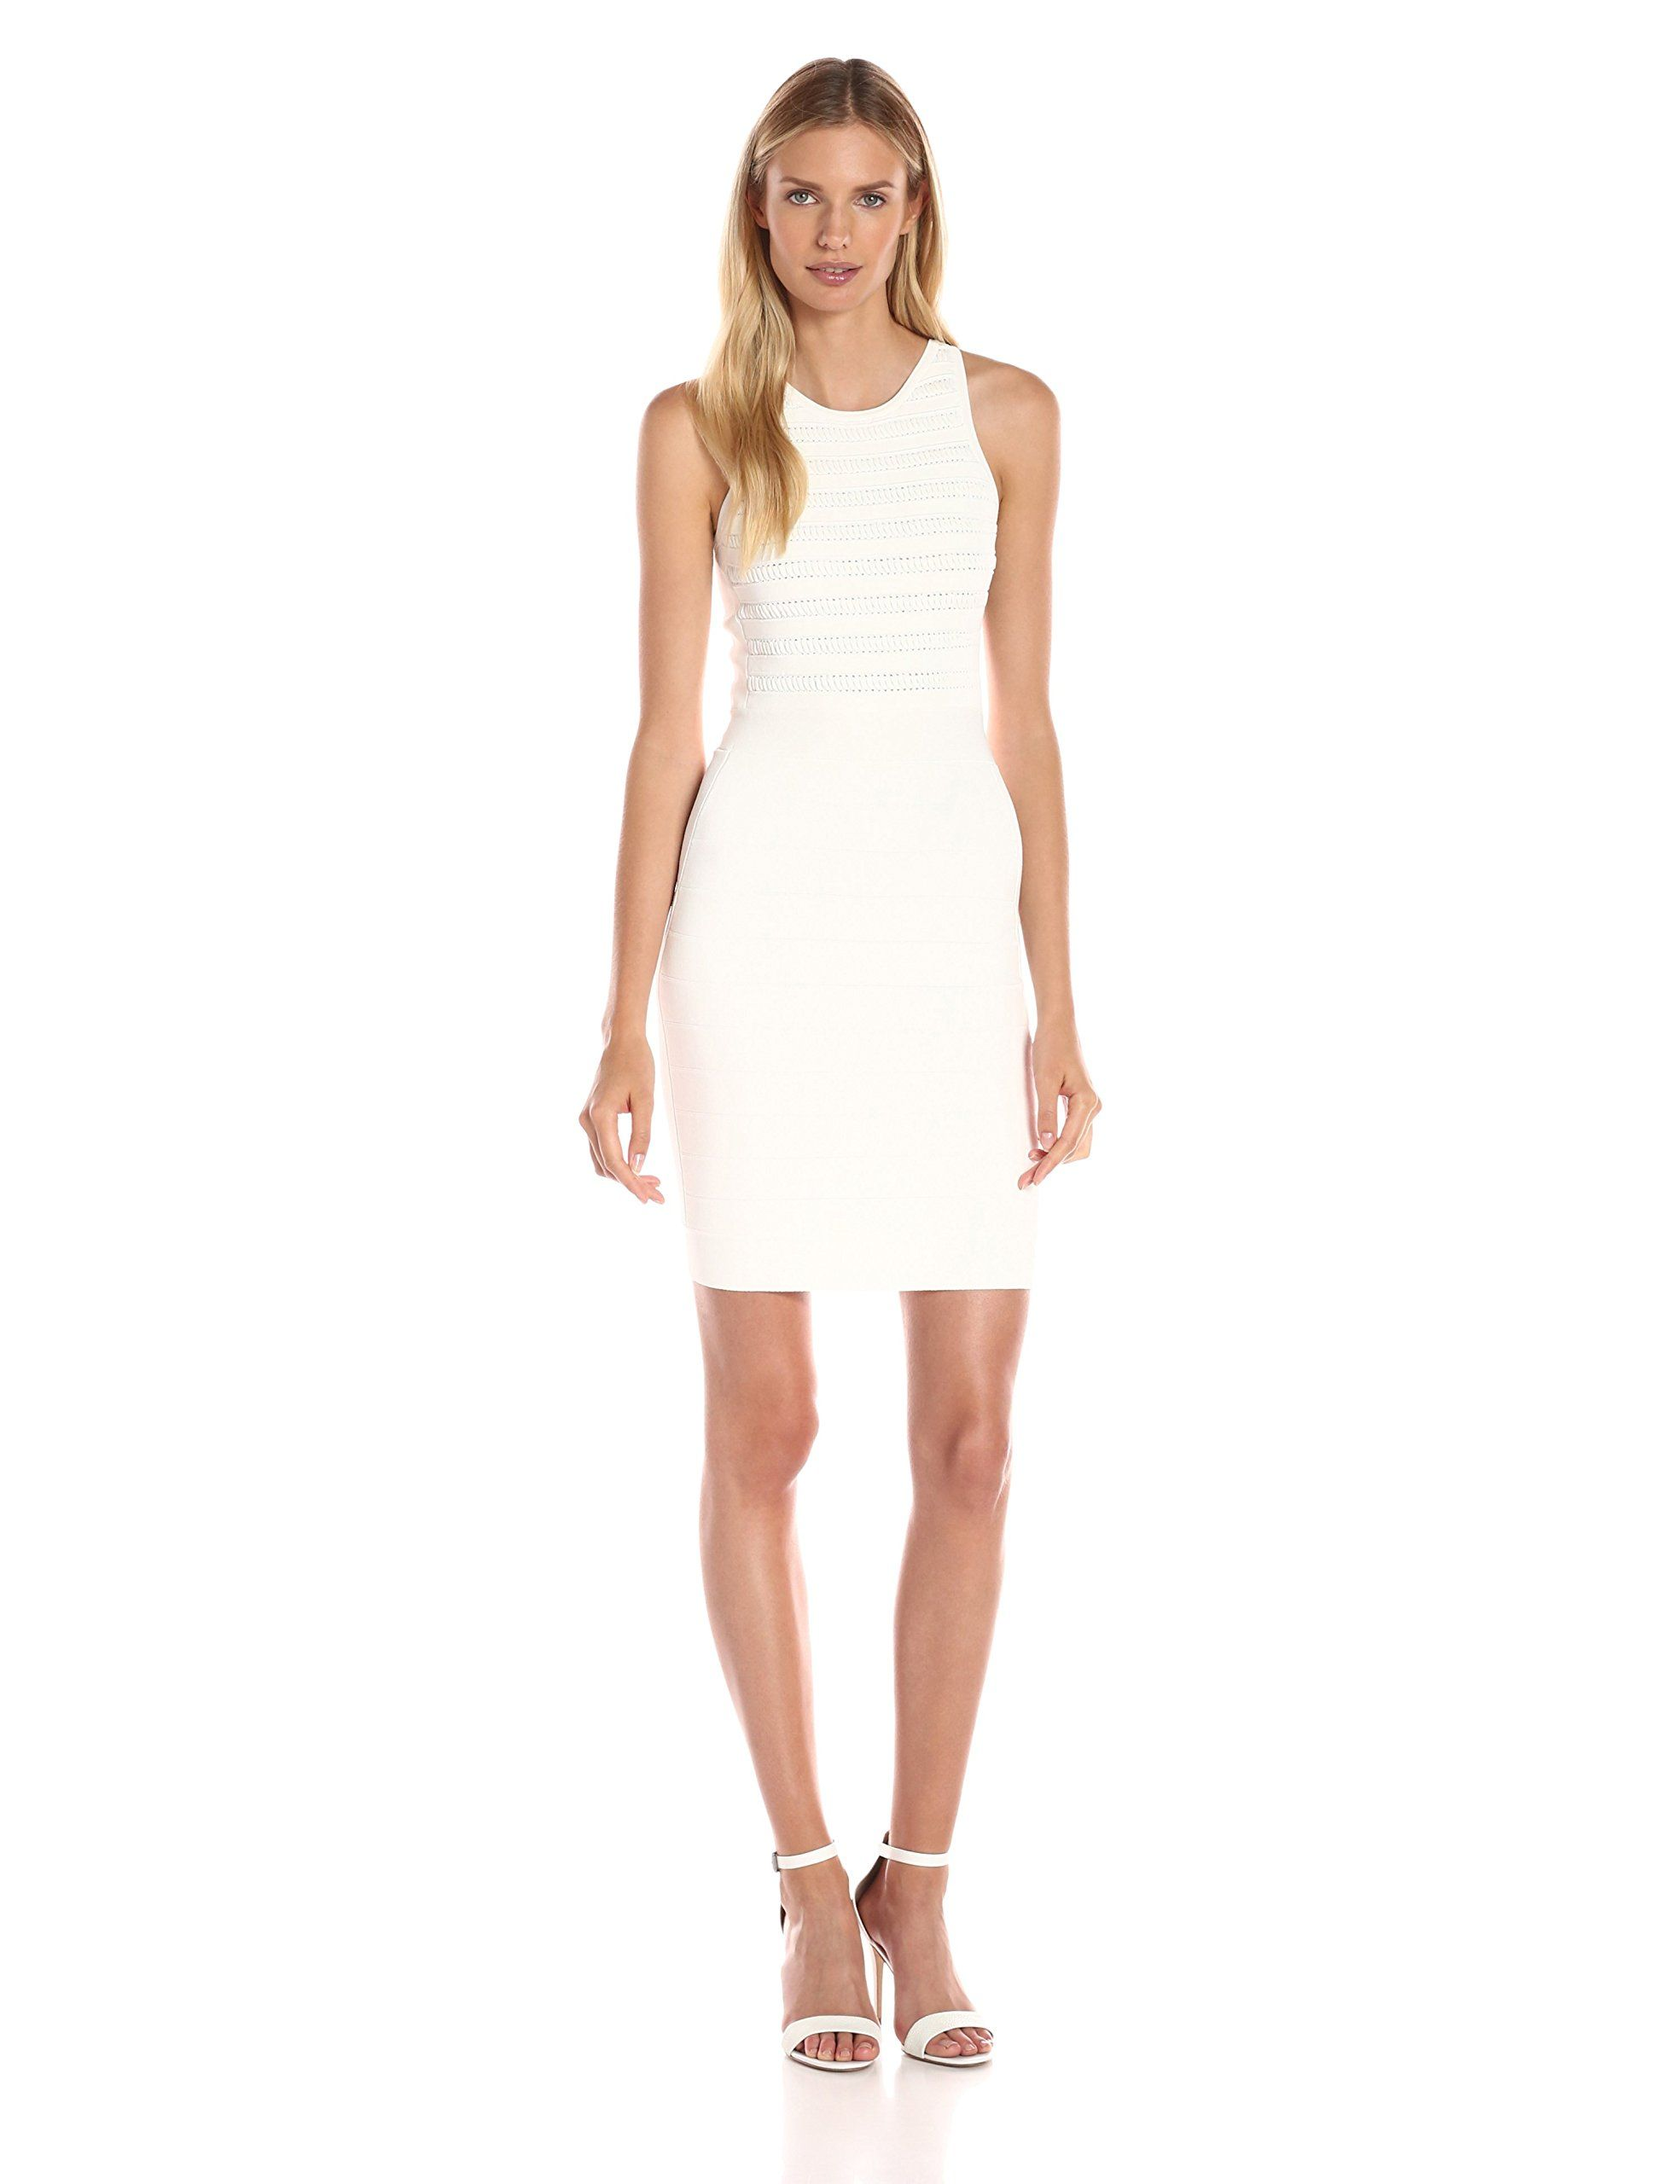 French connection womenus beth crepe dress summer white body